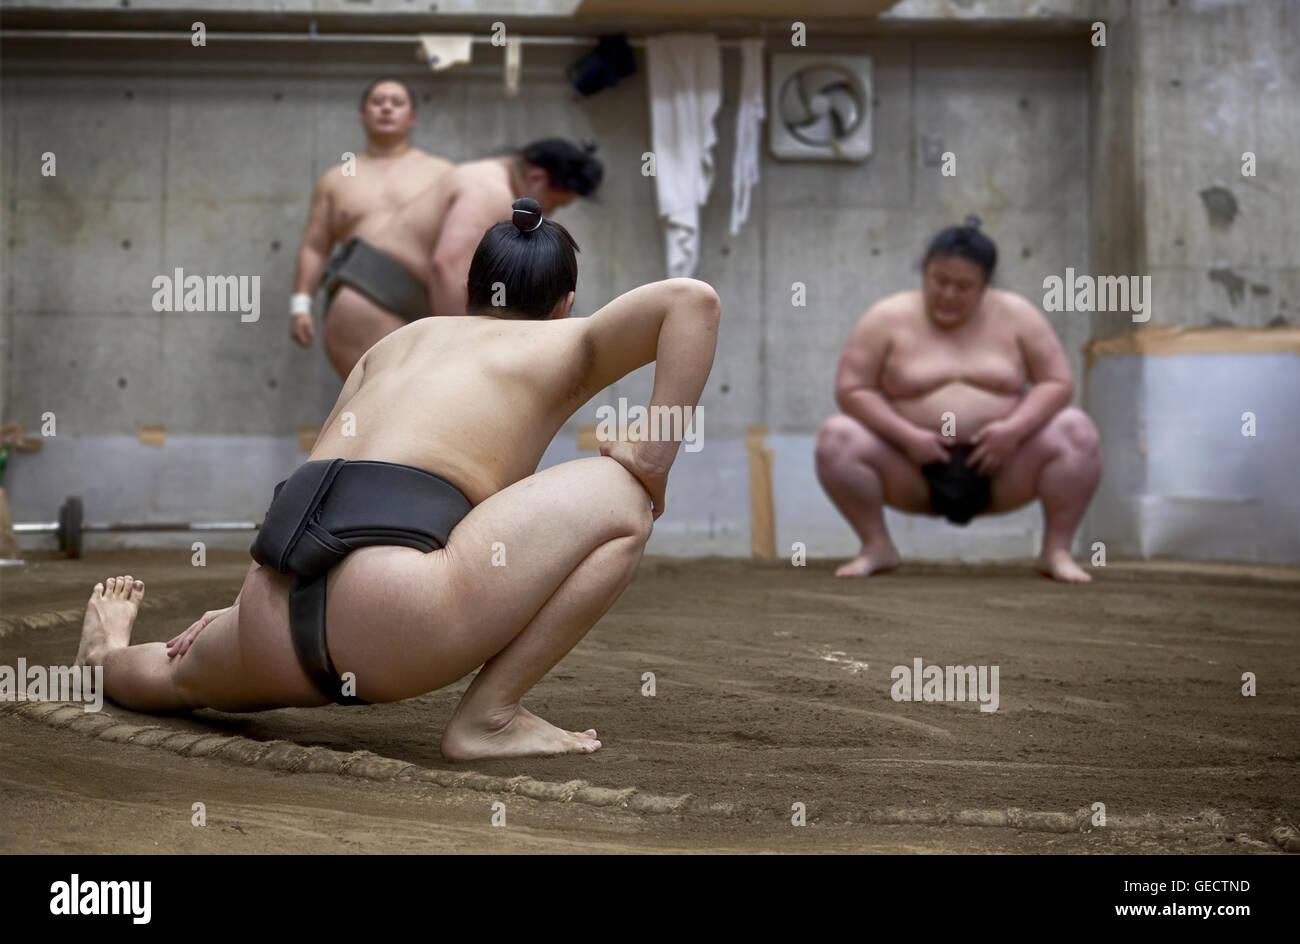 TOKYO, JAPAN - May 18, 2016: Japanese sumo wrestler training in their stall in Tokyo on May 18. 2016 - Stock Image